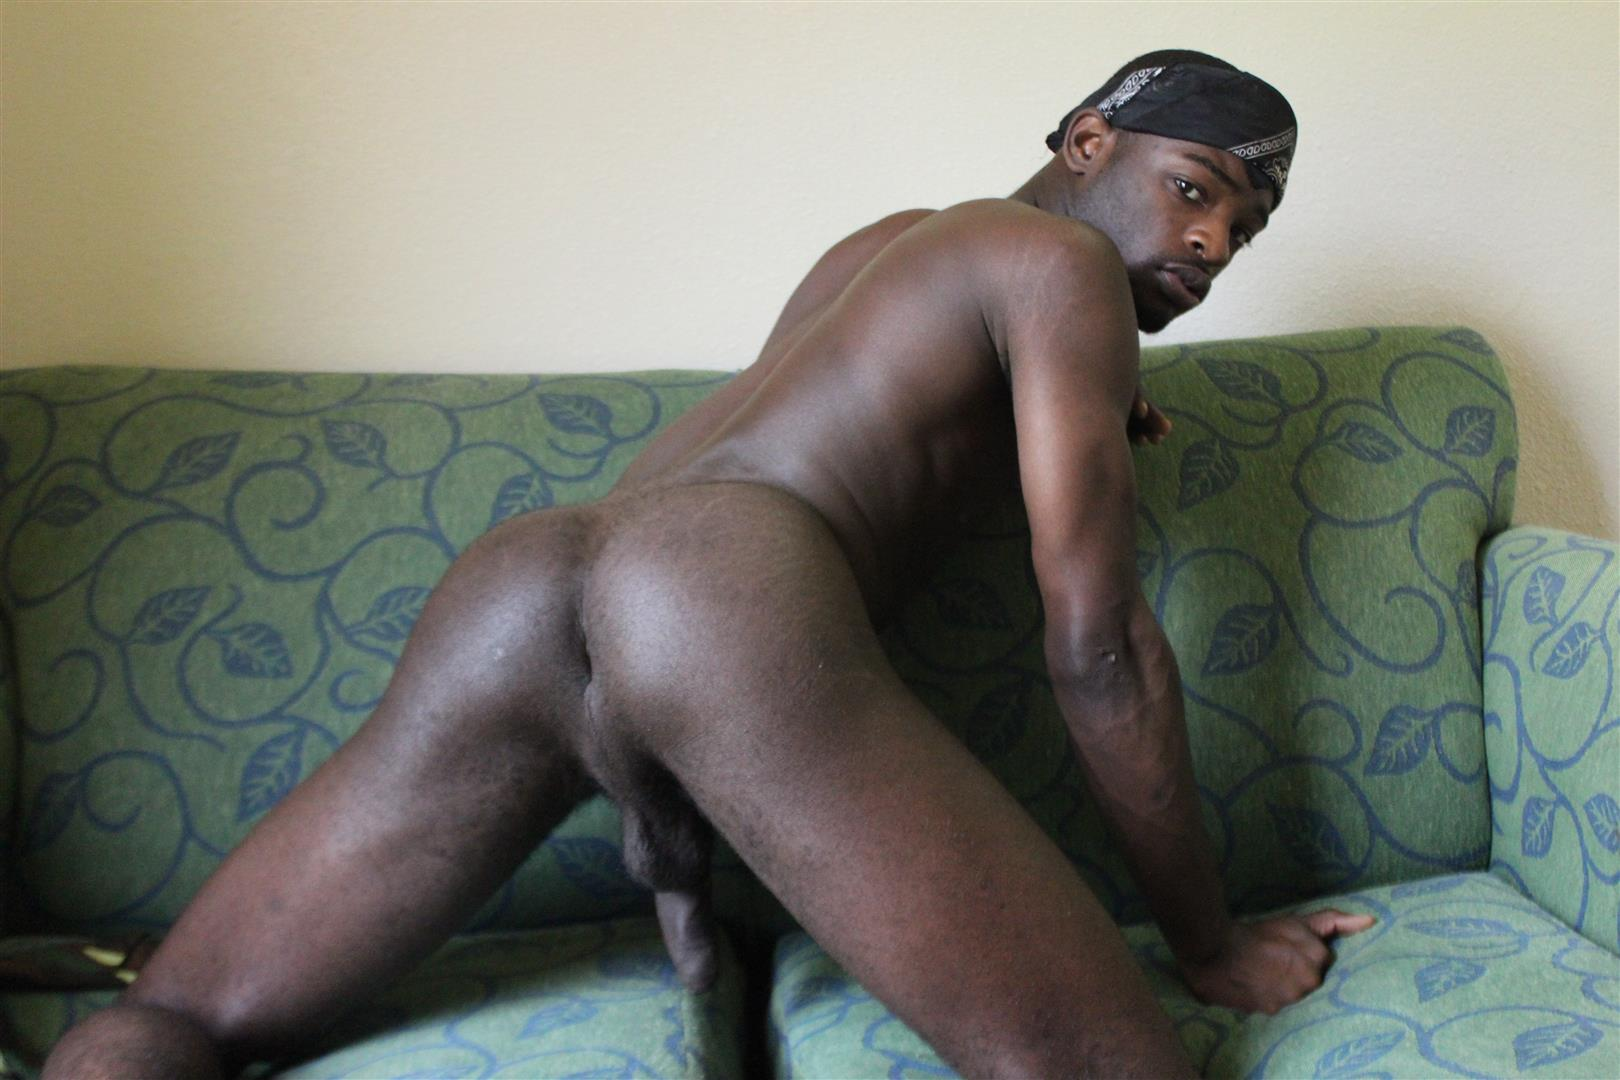 gay bareback gay black porn gay boy daddy gay black